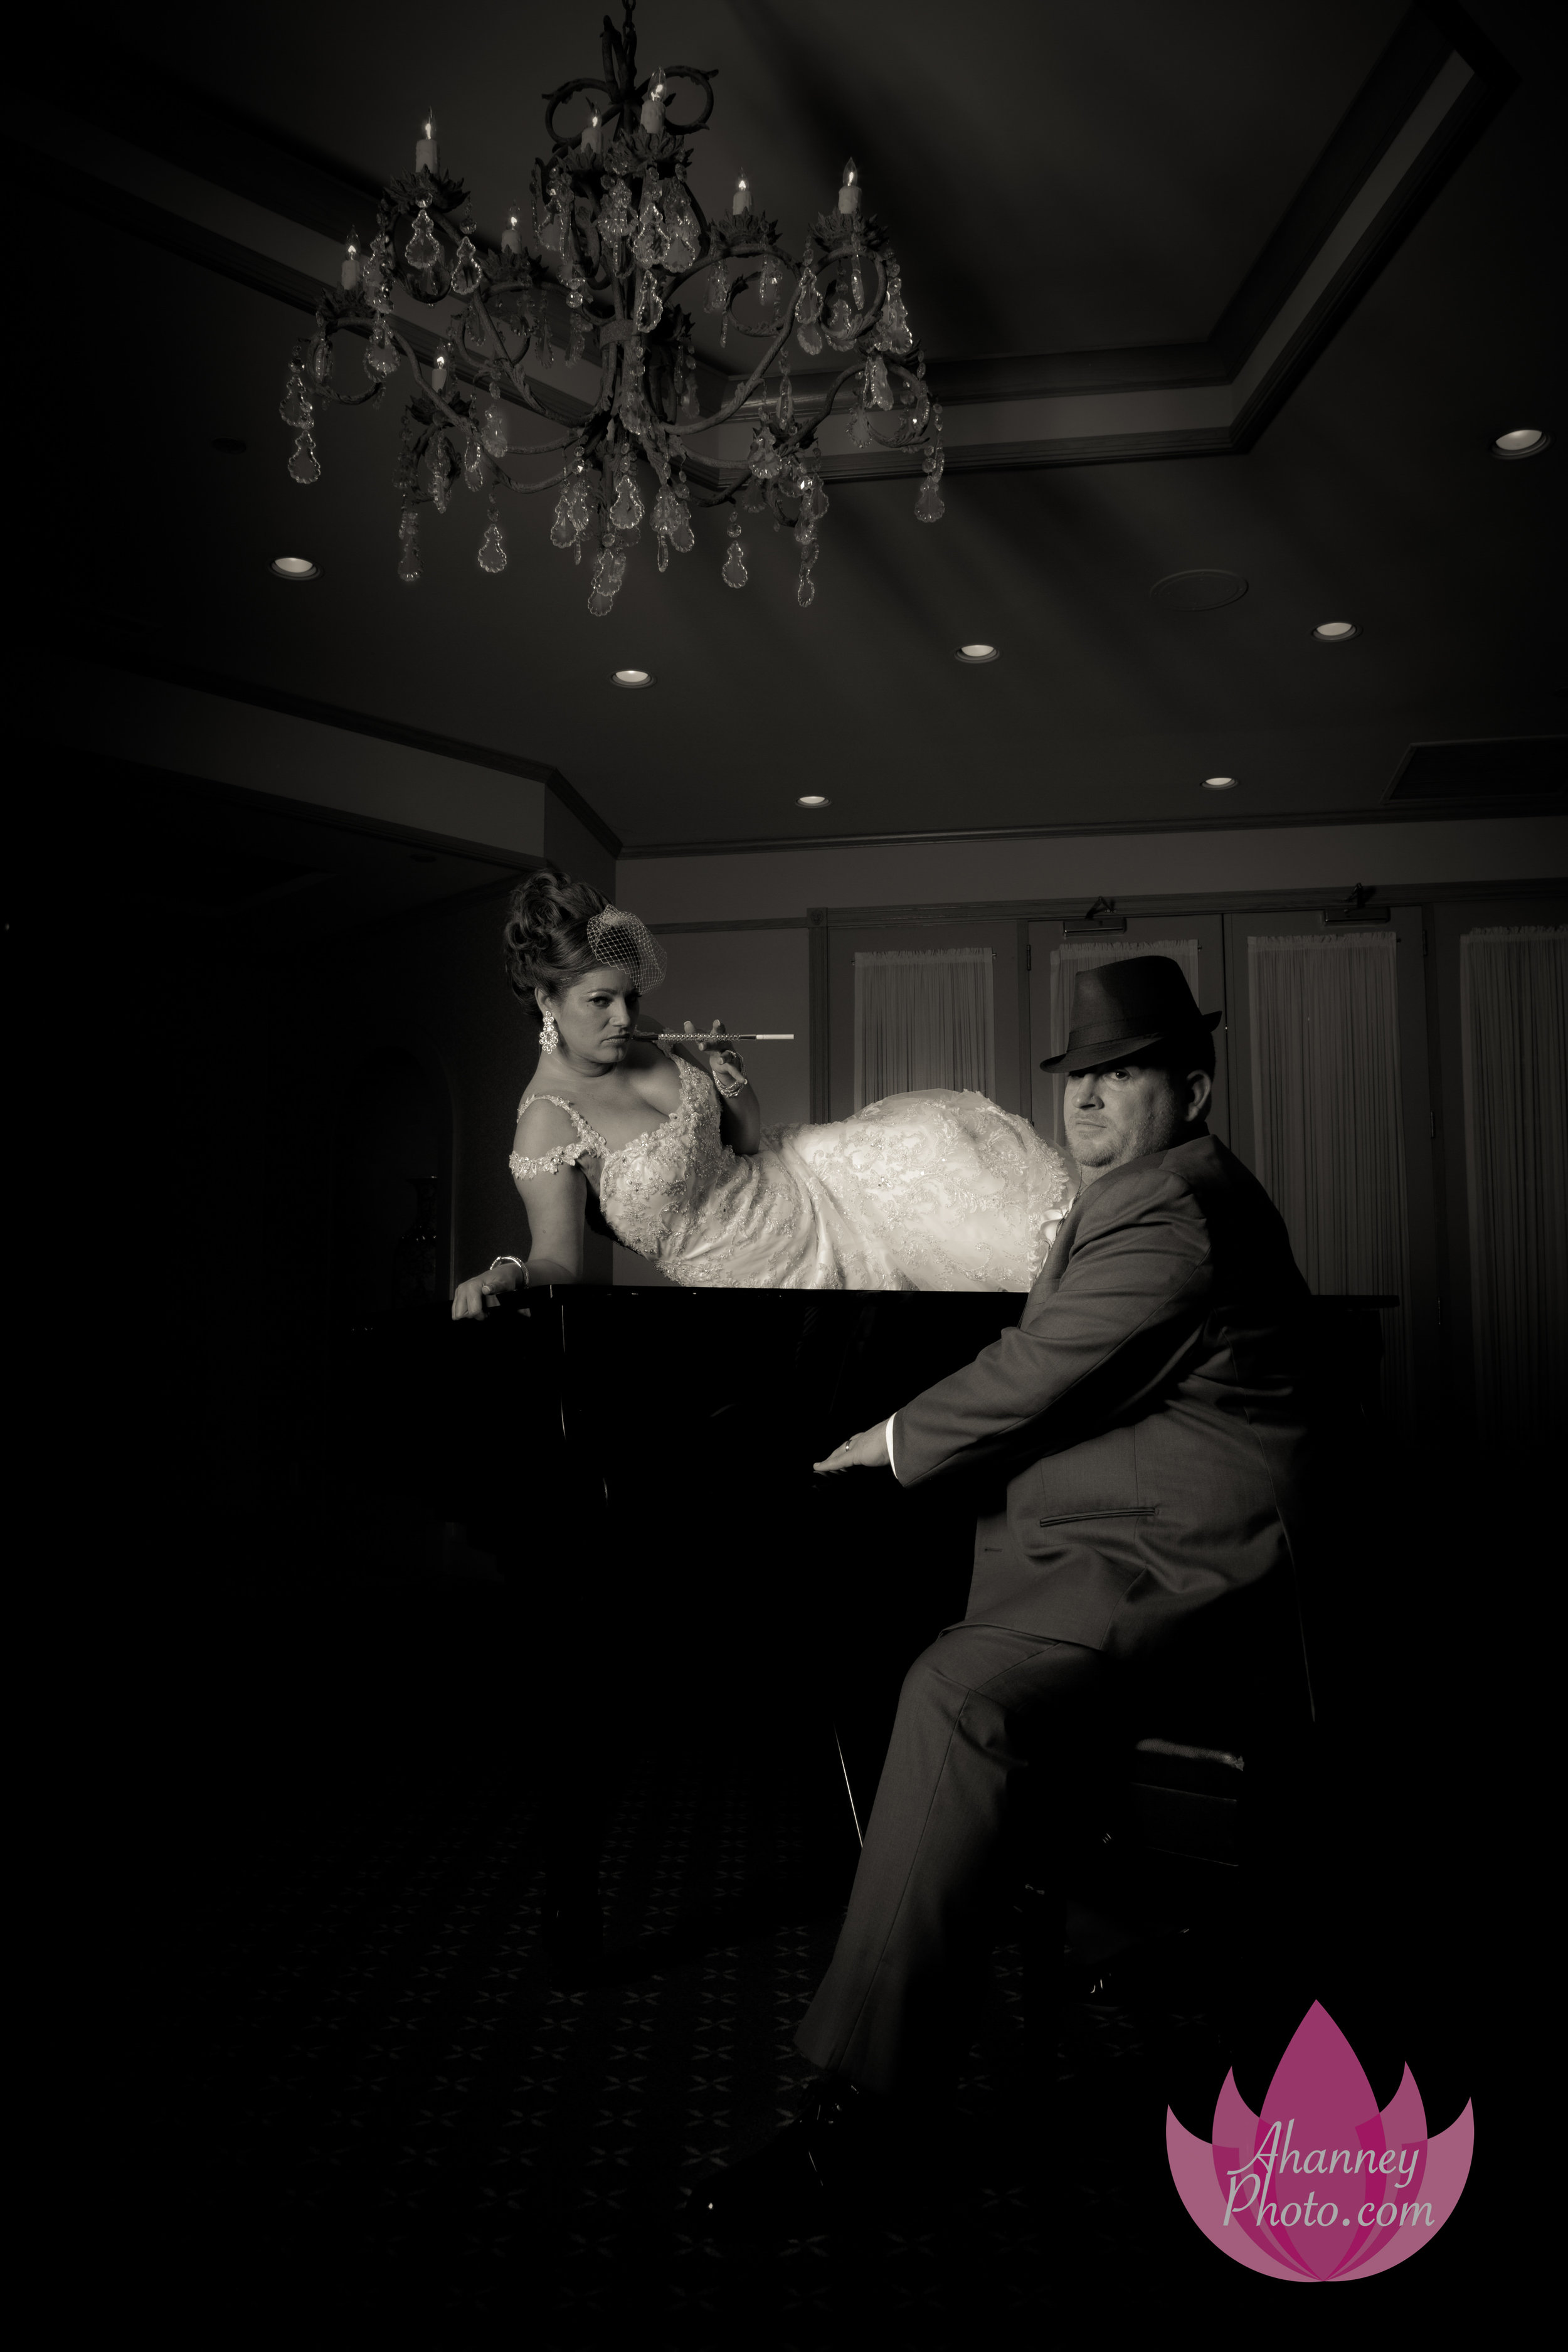 Wedding Photography of Bride on Piano and Groom at The Mansion at Main Street Wedding Couple Voorhees New Jersey Anastasia Hanney Photography AHanneyPhoto